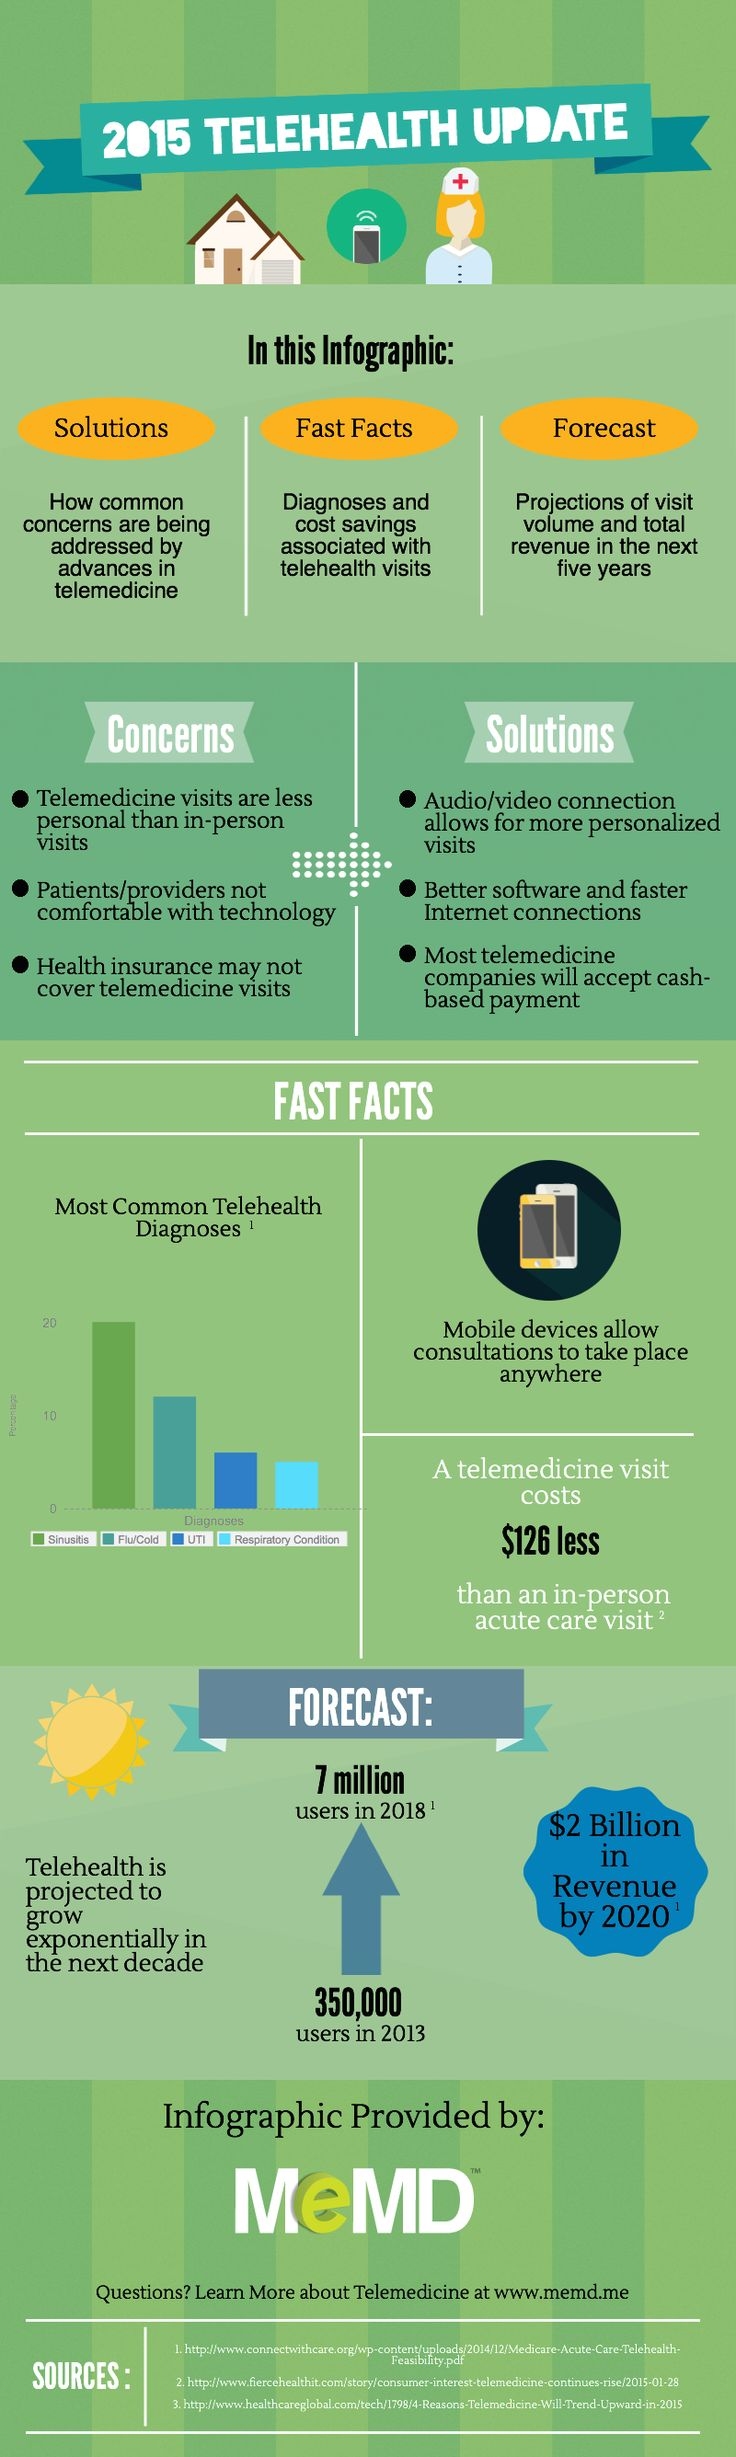 Telemedicine is being used to streamline healthcare options. This infographic highlights the major updates since 2015, showing projected growth and revenue.